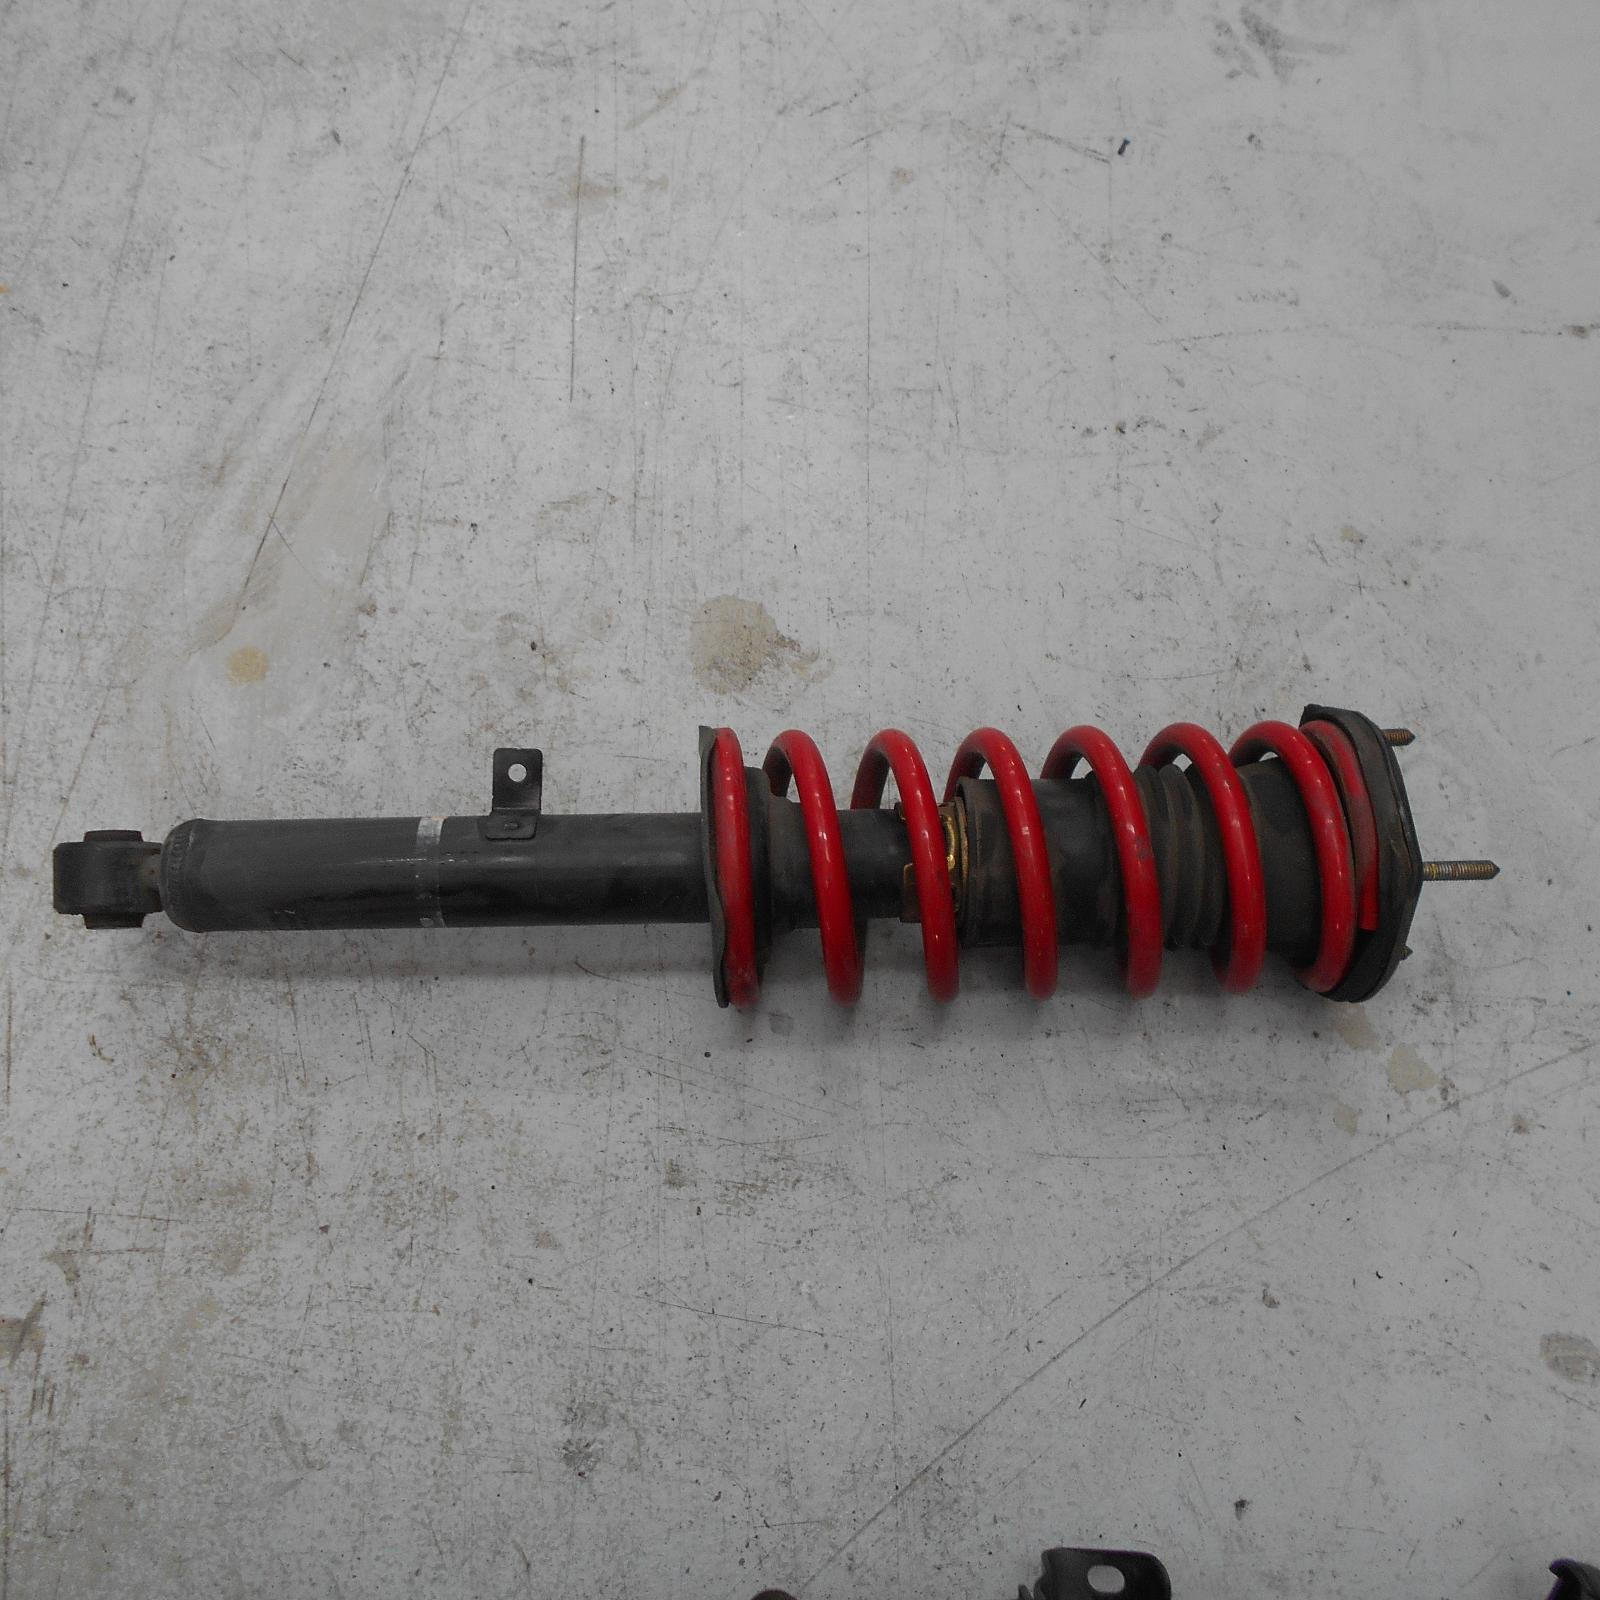 LEXUS IS200/IS300, Right Front Strut, IS200, 2.0, 1G-FE (STAMPED 53010), 01/98-10/05